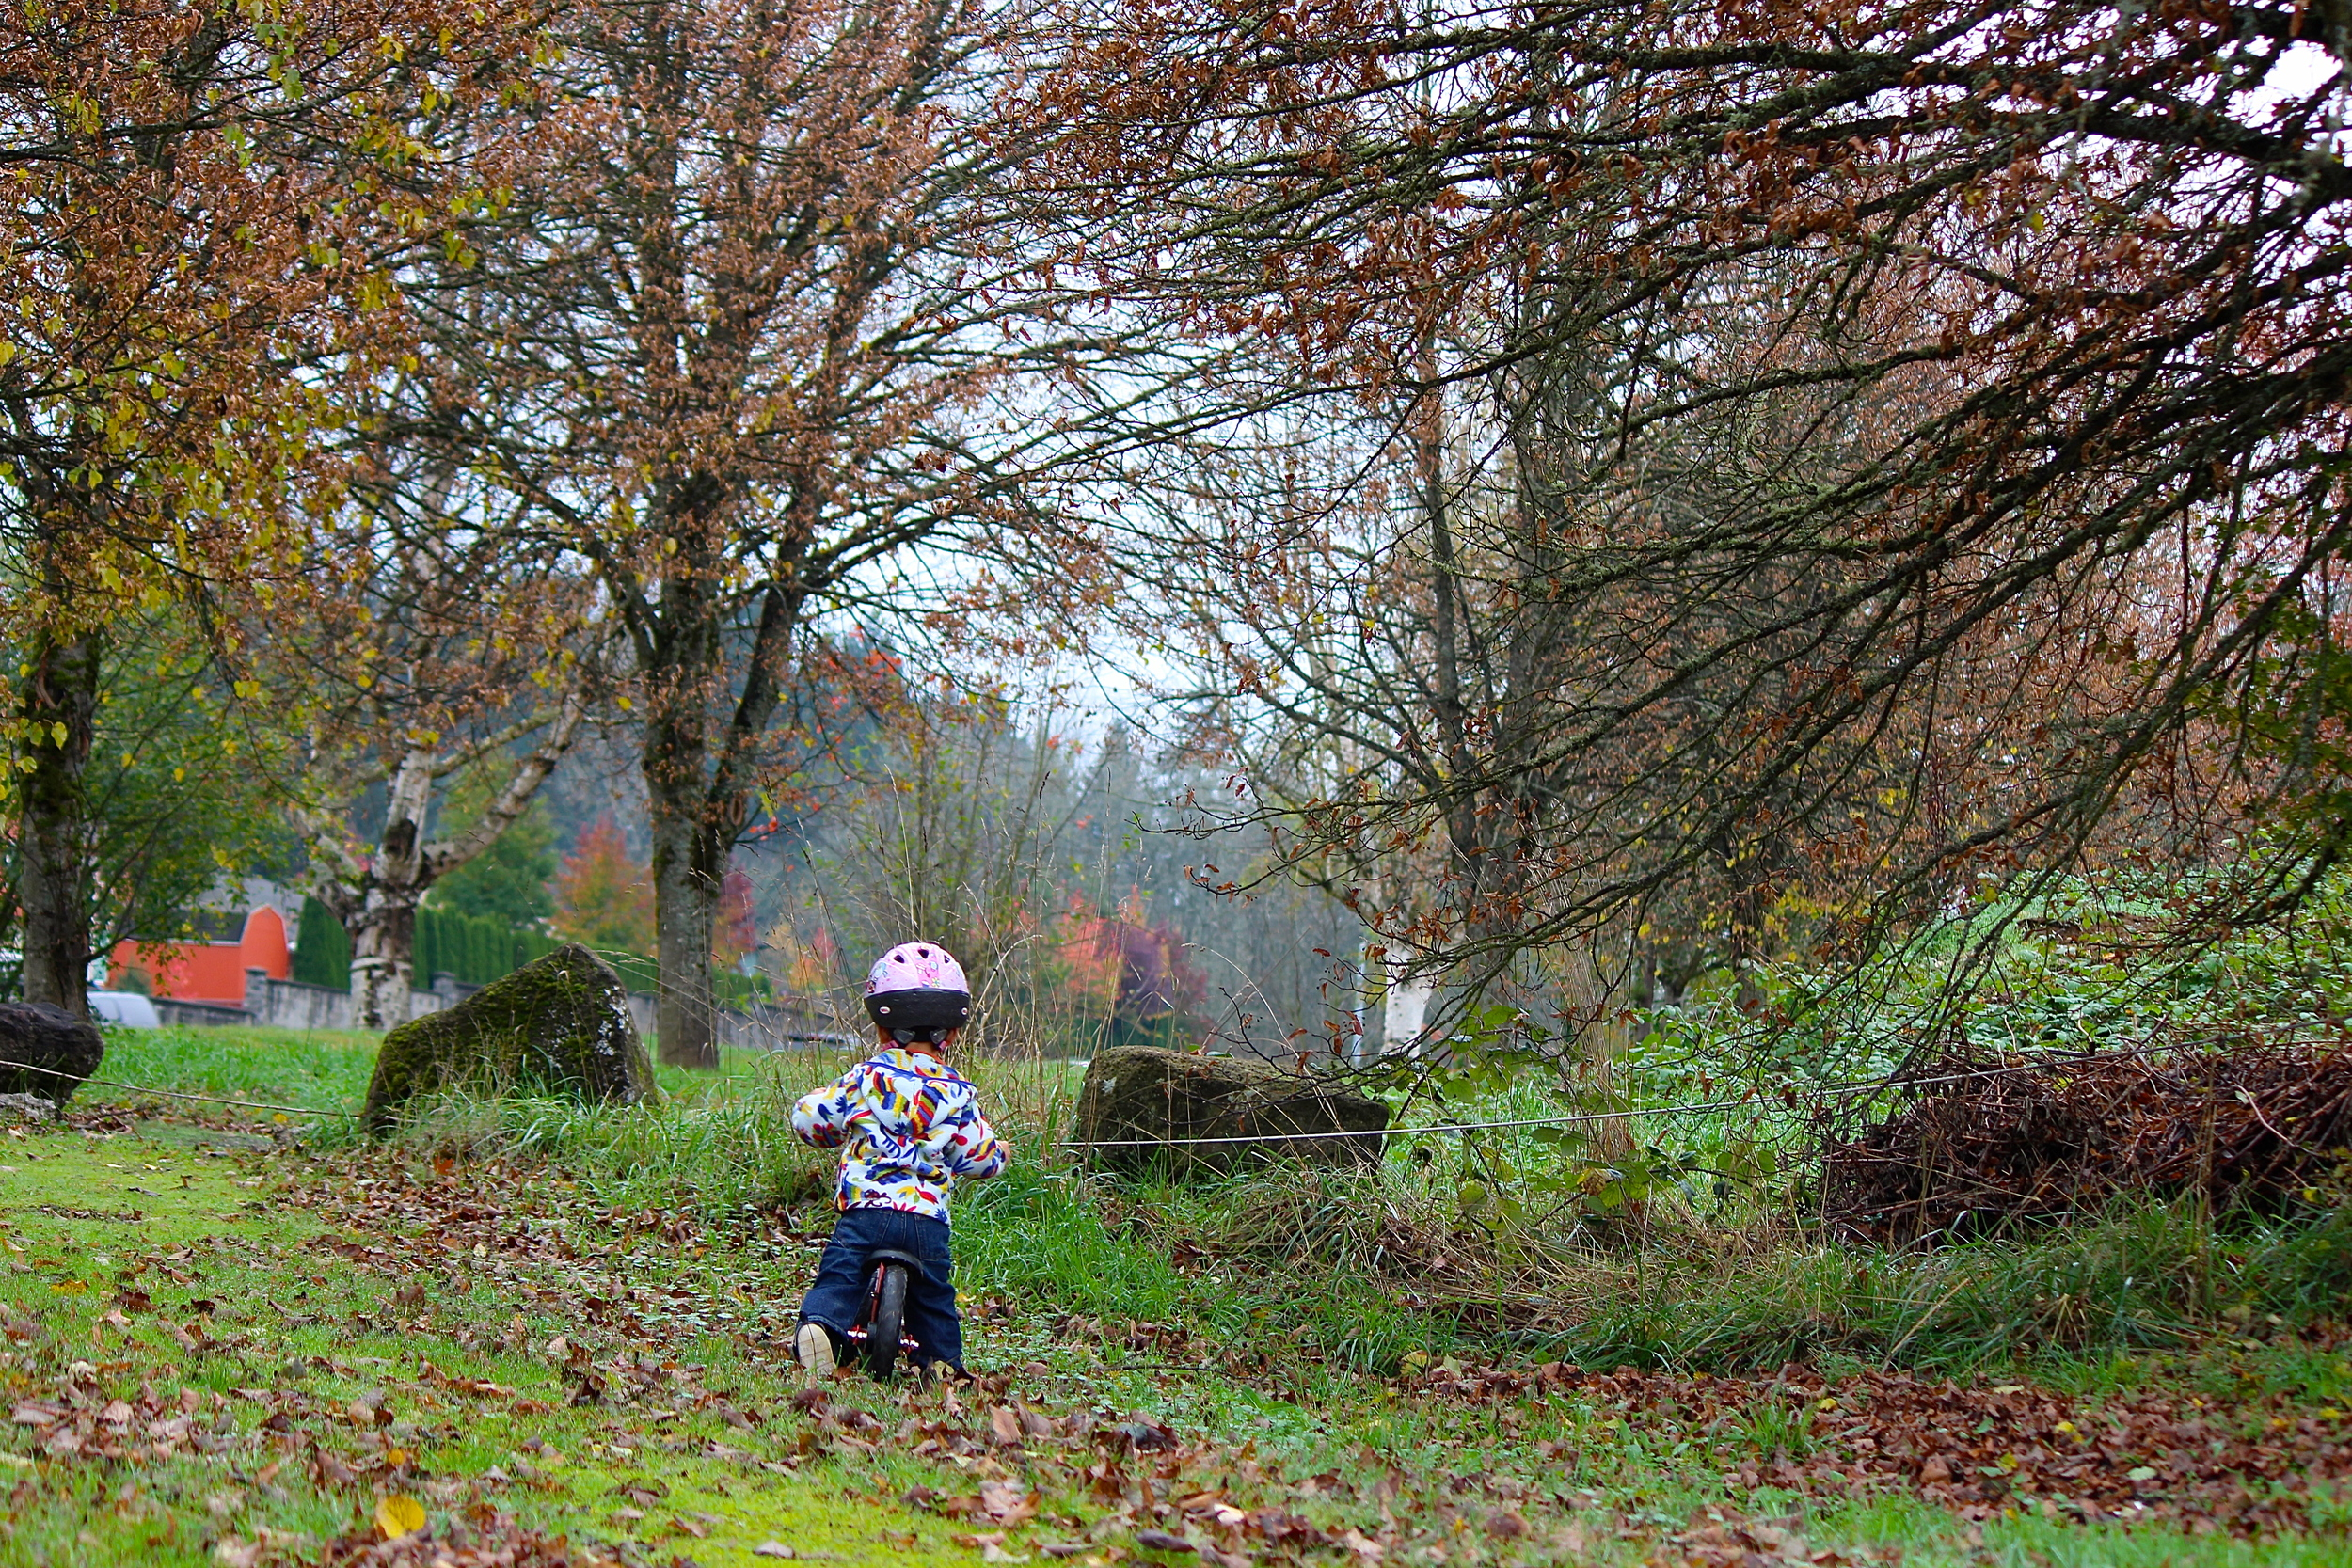 My toddler on his Strider bike  en route  to the park